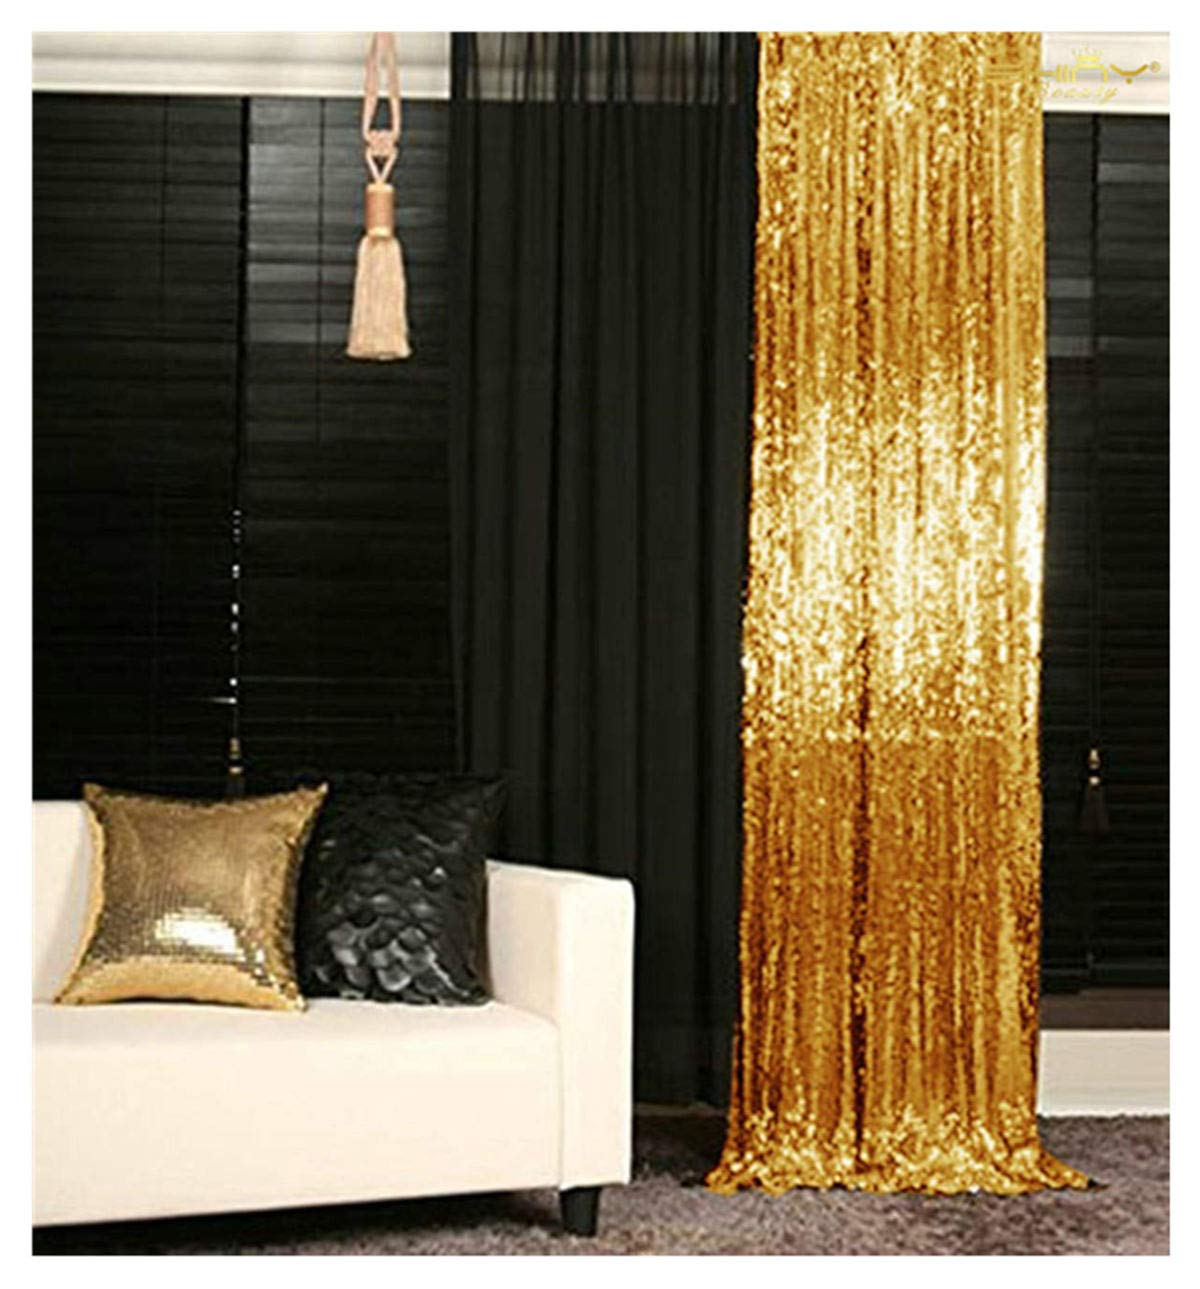 Sequin Curtain Backdrop 2 Panels 4FTx6FT Gold Backdrop Curtain Photo Booth Backdrop 48inx72in~190425E